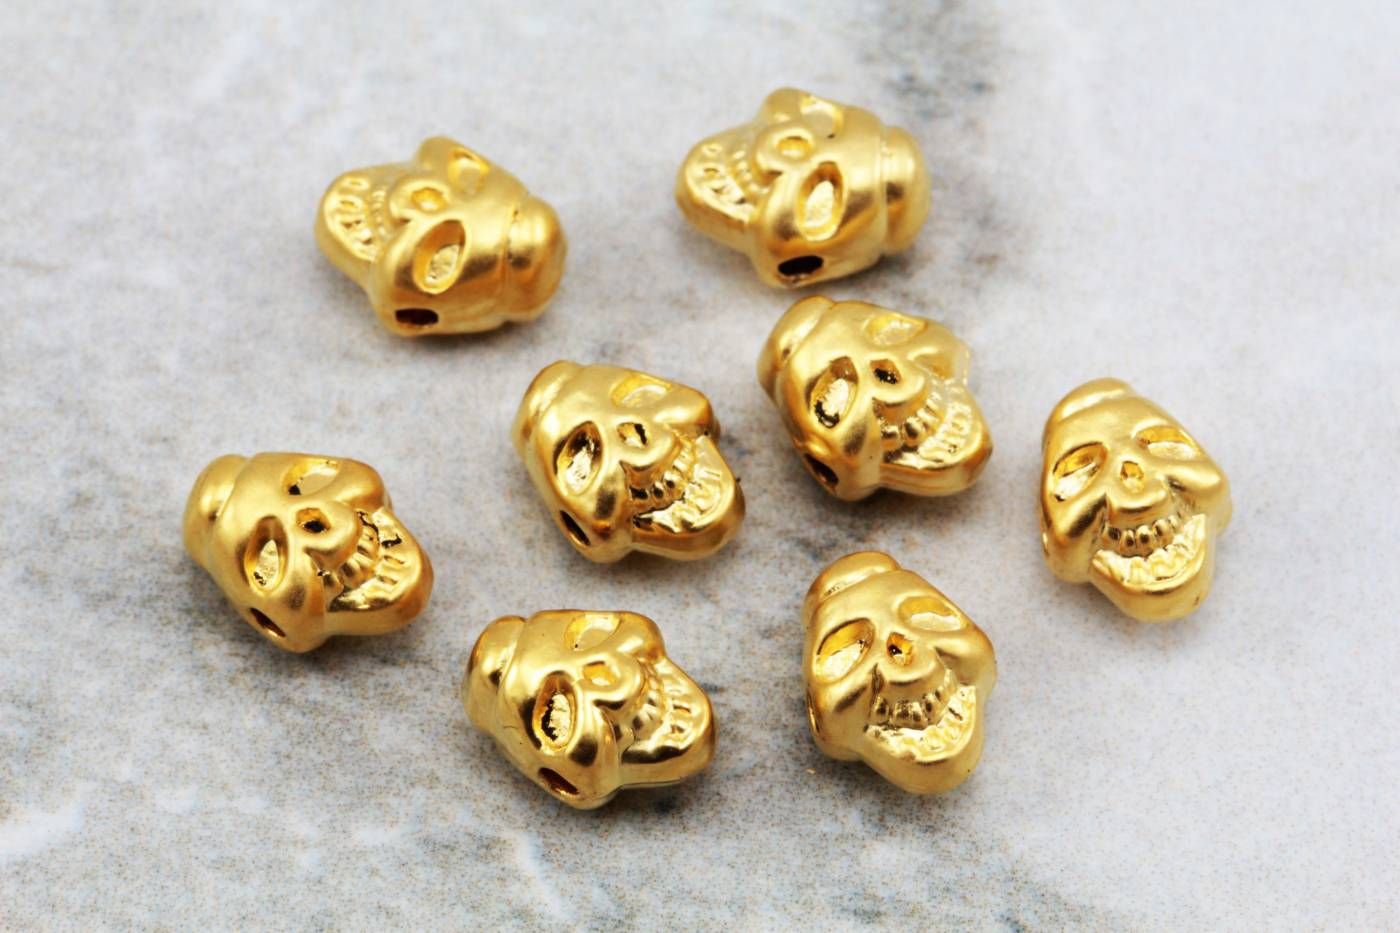 gold-plated-metal-skull-head-charms.jpg